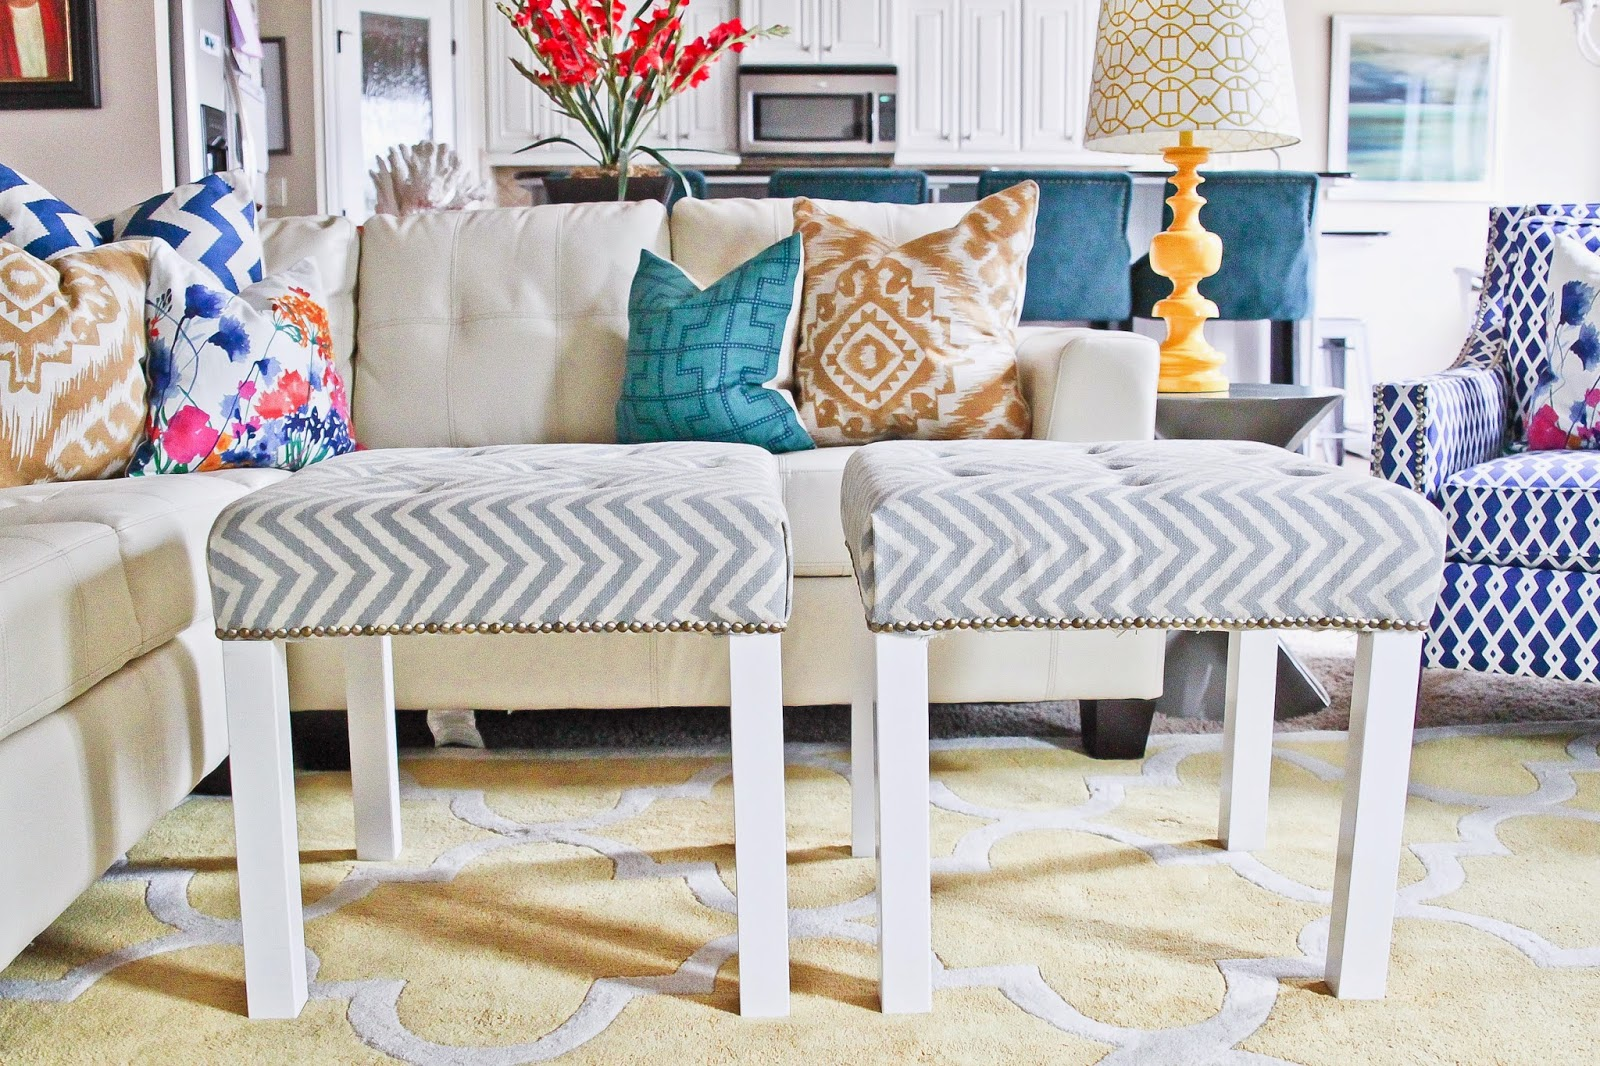 chic and elegant DIY ottomans of IKEA Lack tables